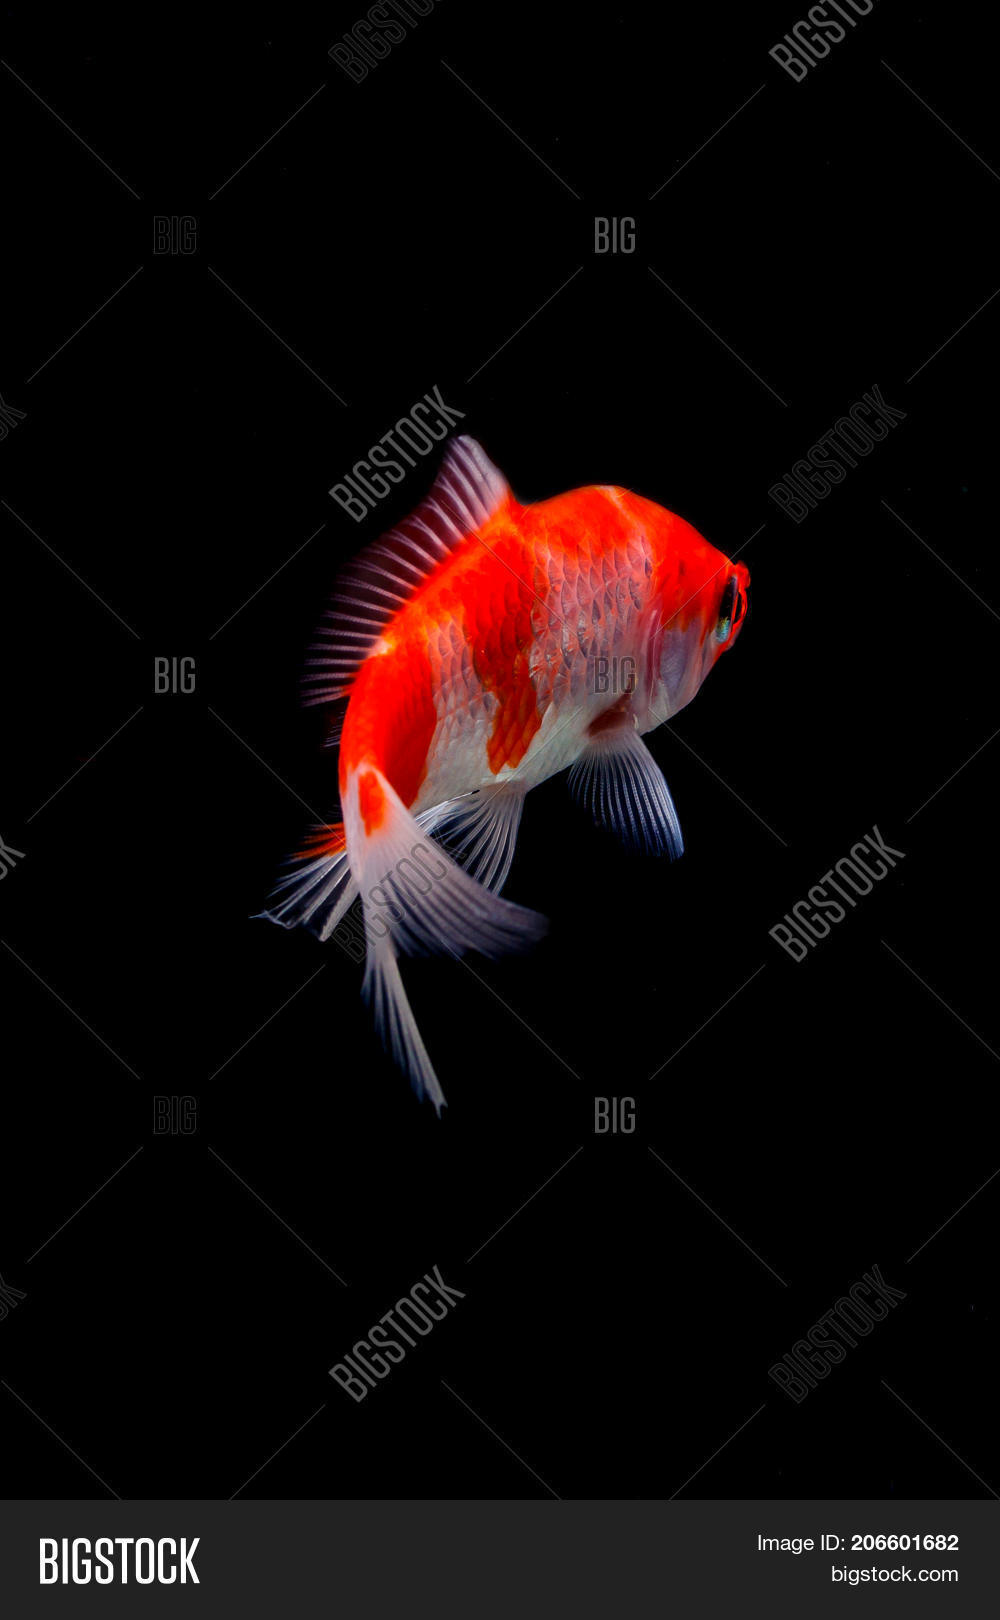 Koi Fish Isolated On Black Image & Photo | Bigstock